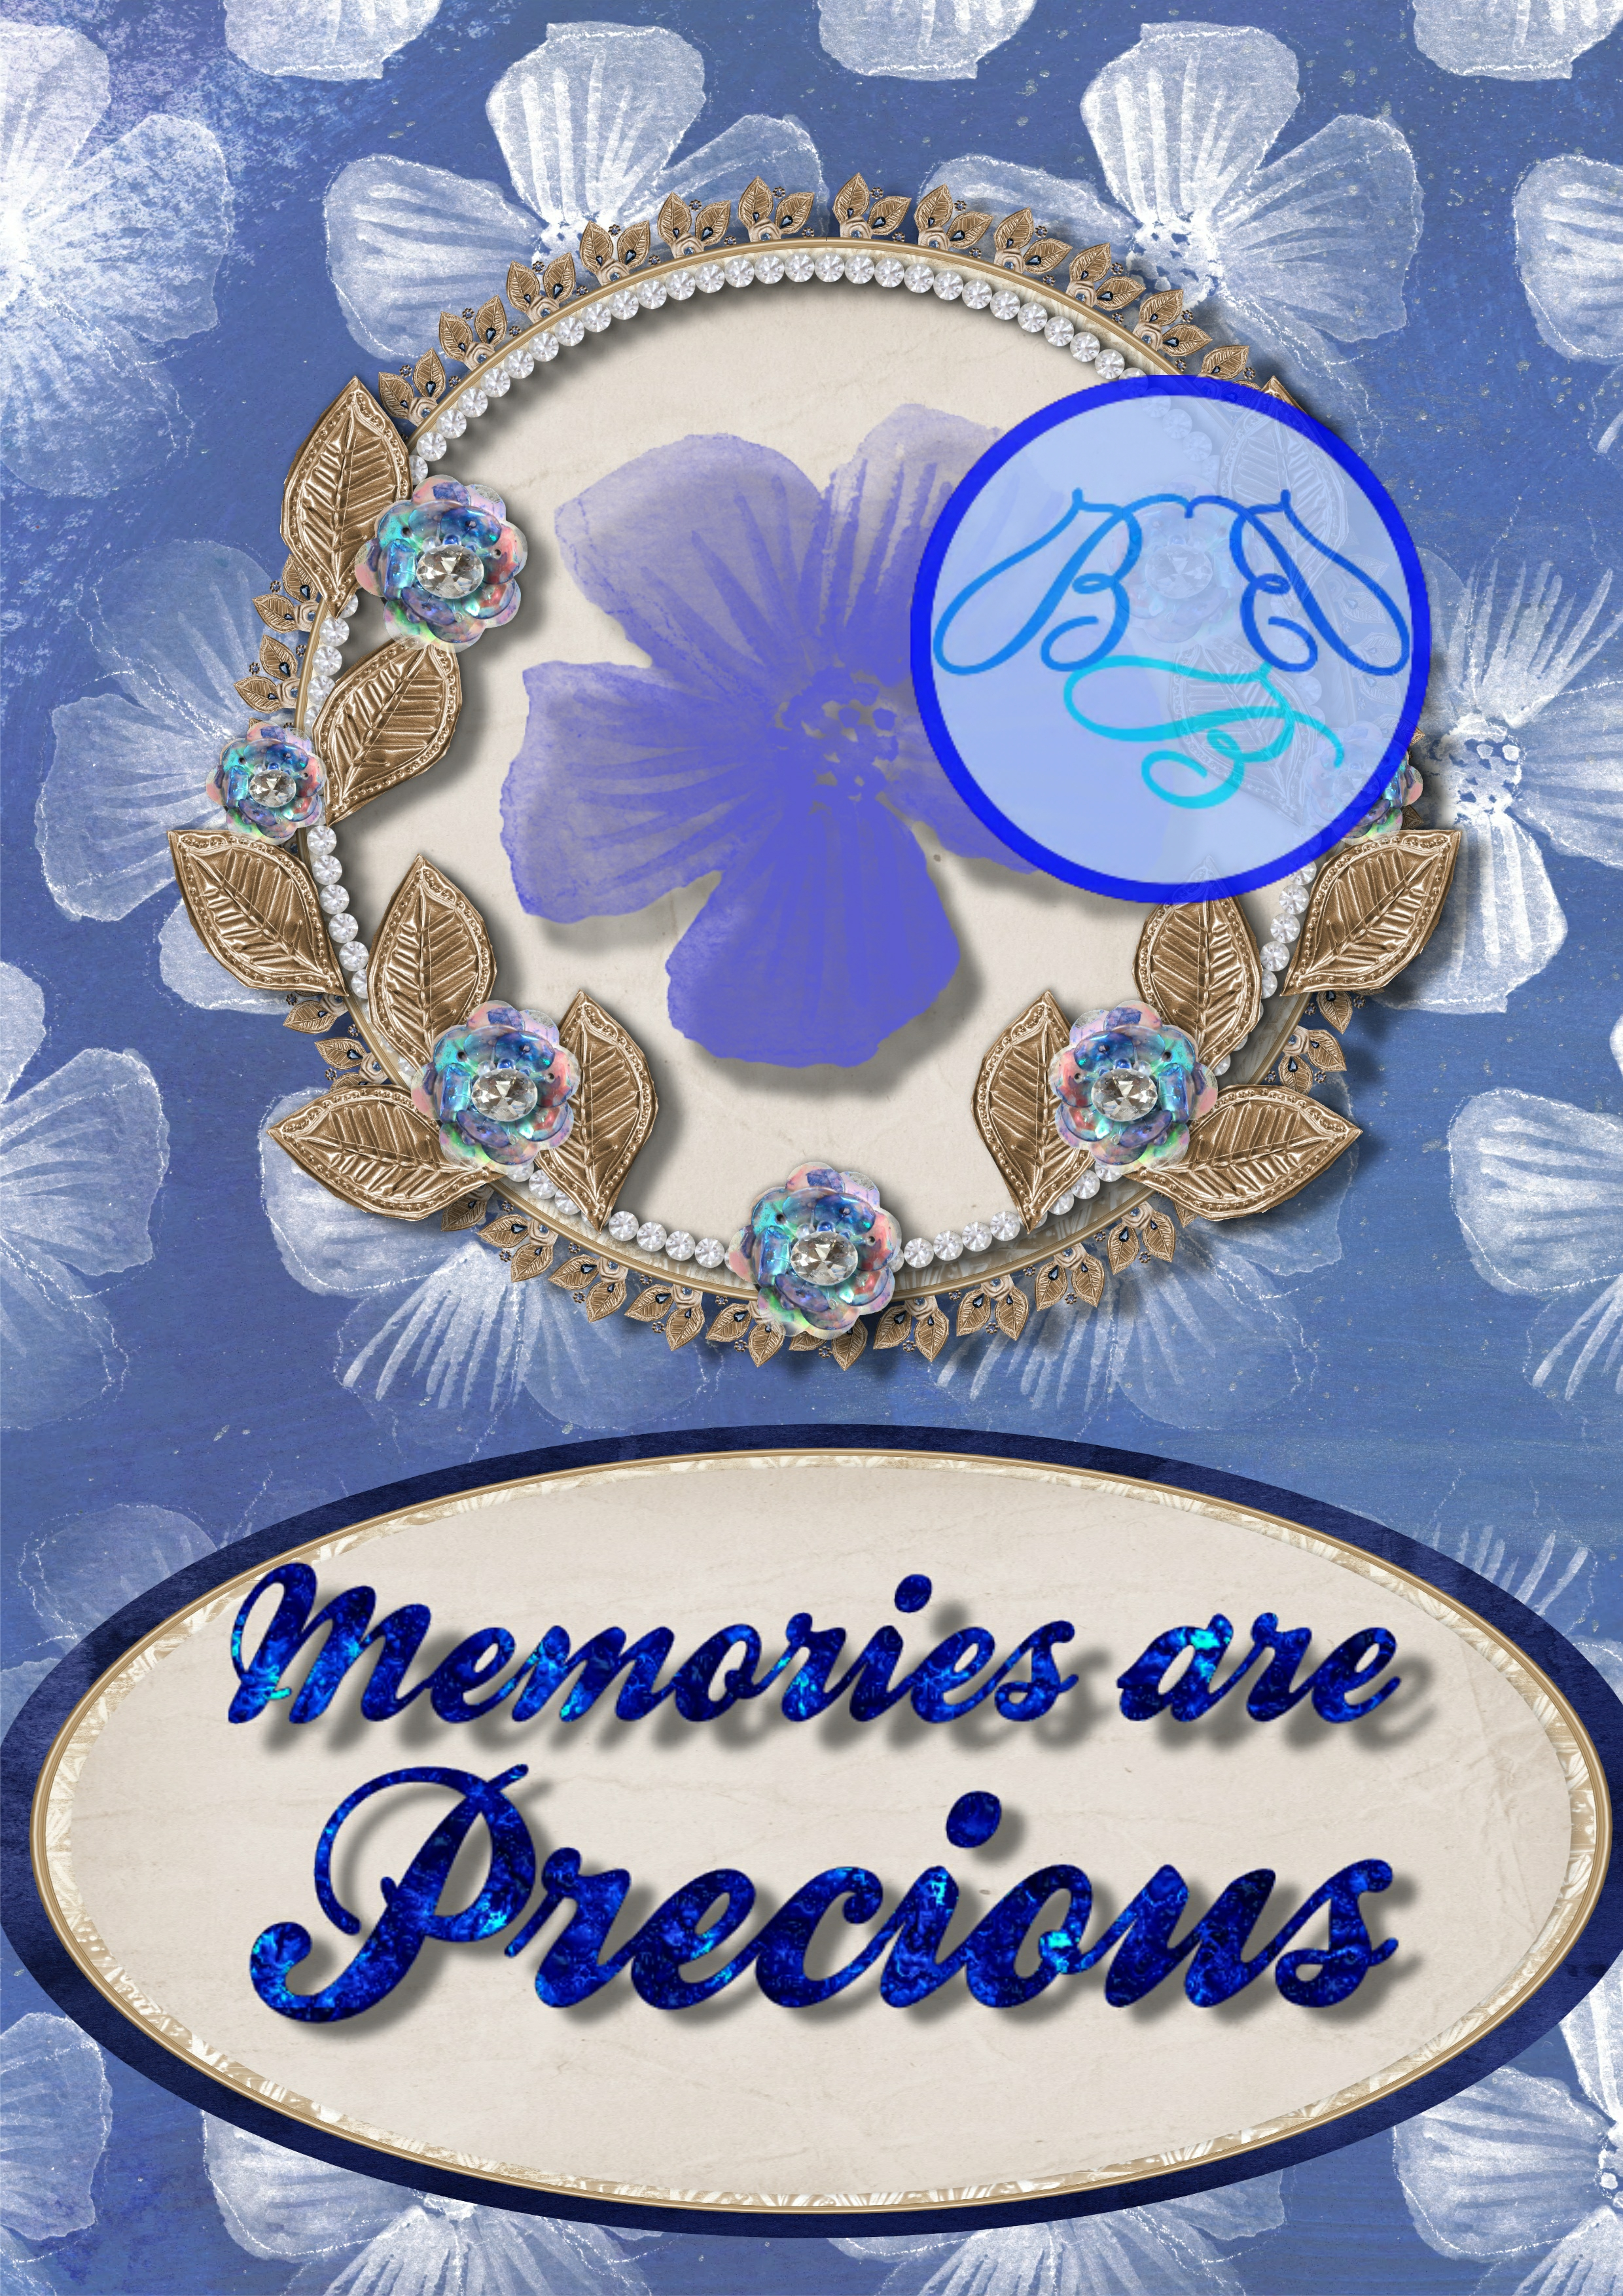 TBBBaA008 Memories are Precious